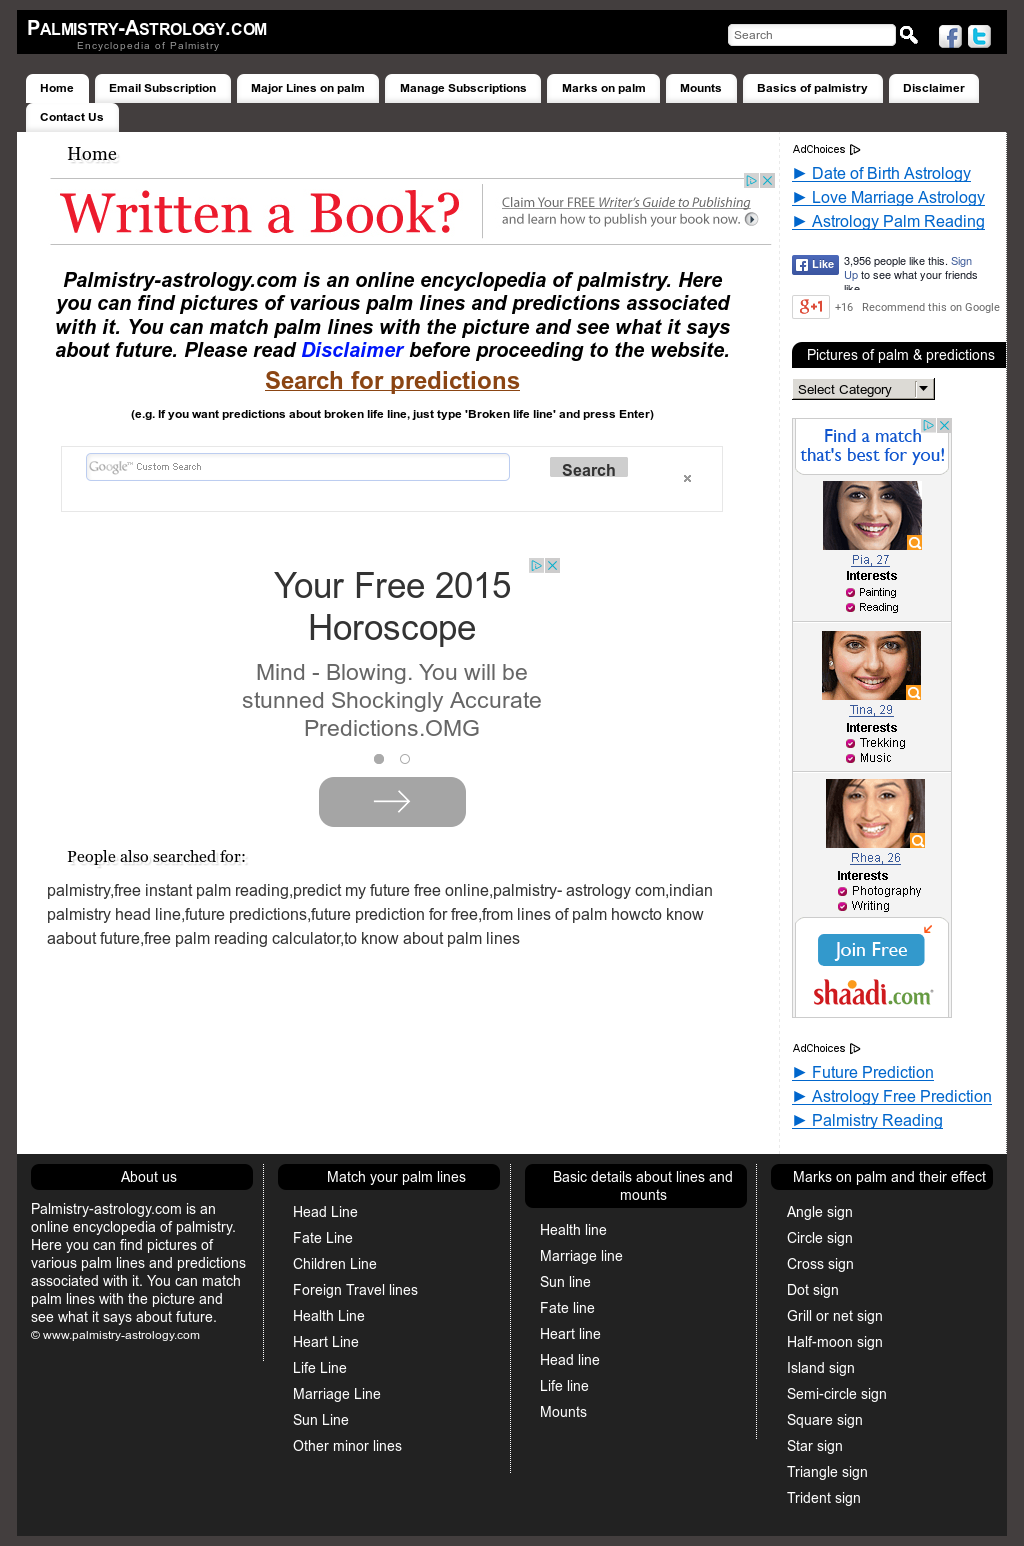 Palmistry-astrology Competitors, Revenue and Employees - Owler